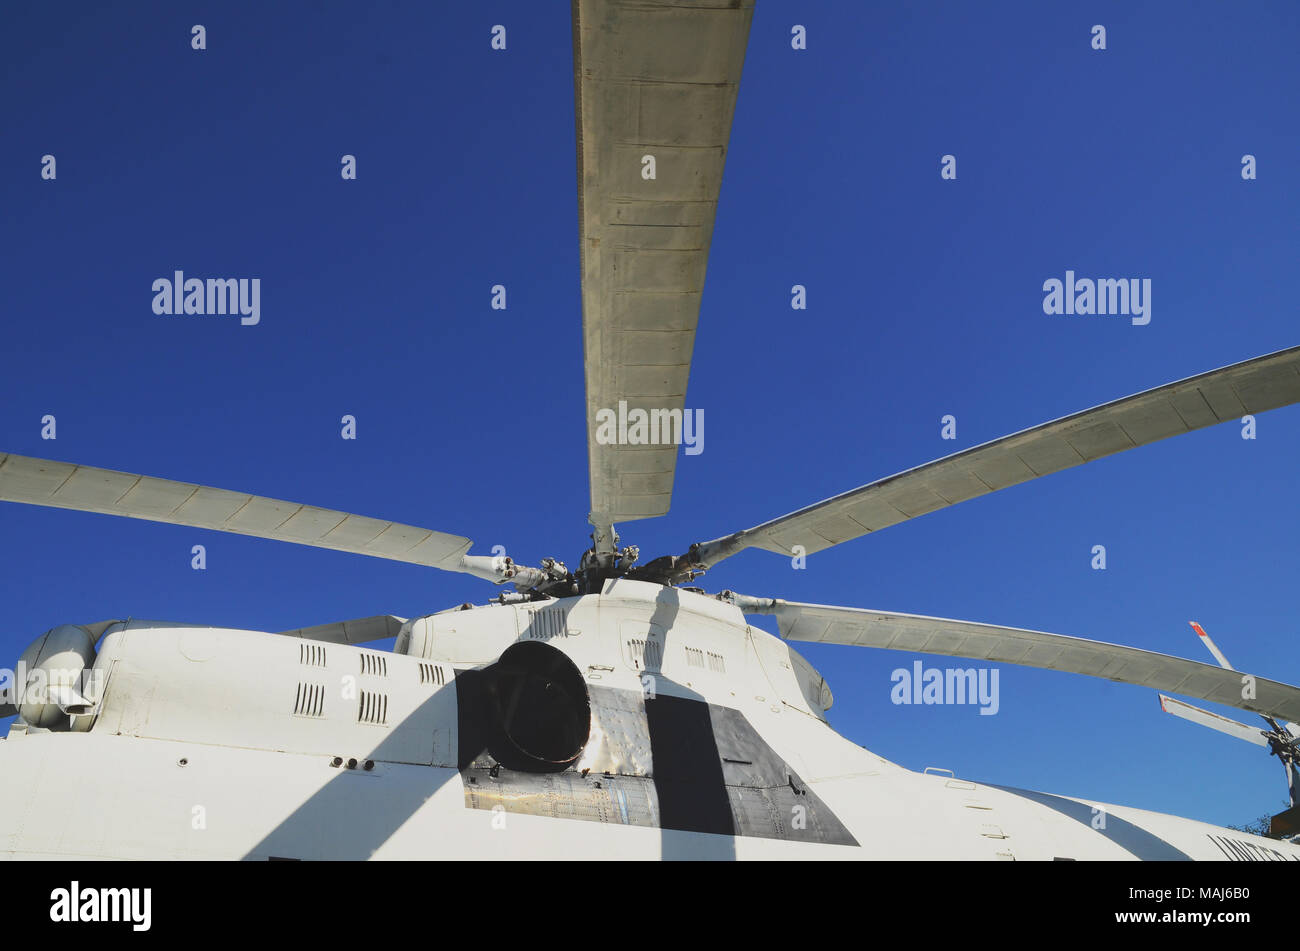 Cab and propeller aircraft closeup - Stock Image